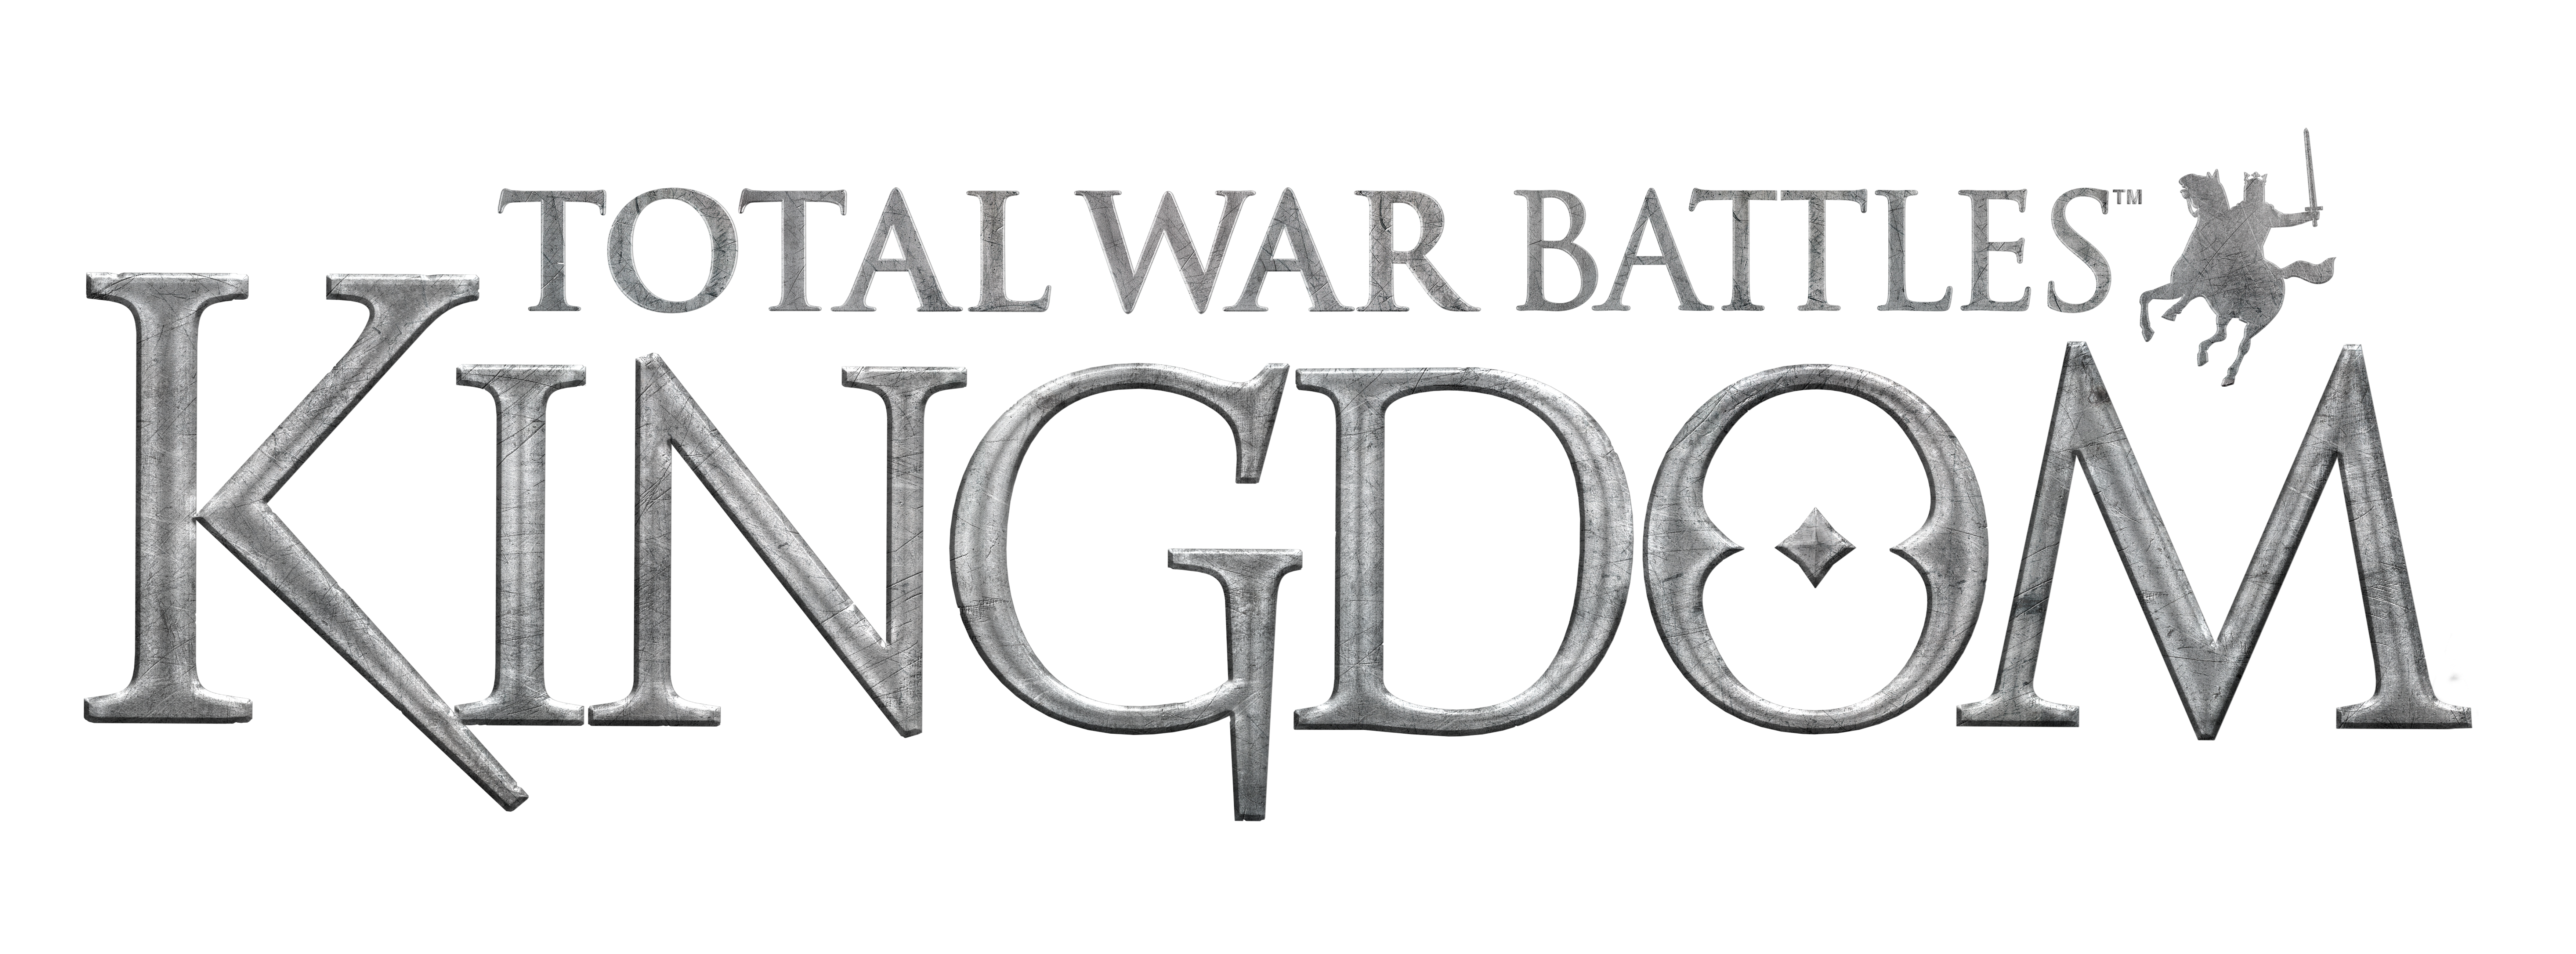 Box art - Total War Battles: KINGDOM